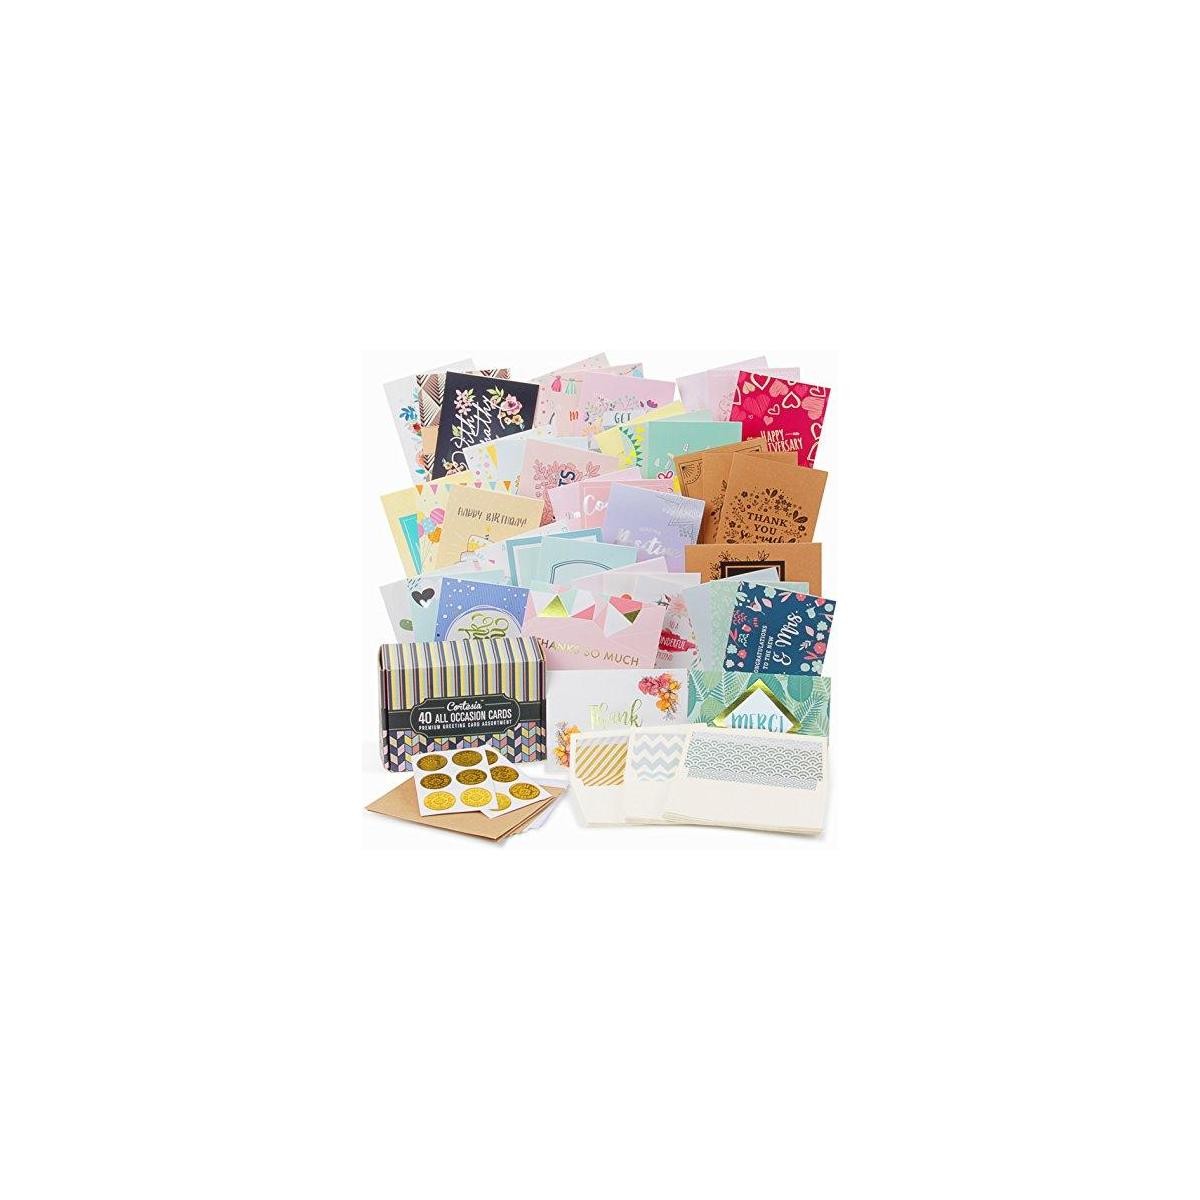 All Occasion Greeting Cards Assortment - 40 UNIQUE DESIGNS with GOLD and SILVER EMBELLISHMENTS, Box set incl. Natural Linen Color Envelopes with Printed Patterns and Kraft Paper Cards